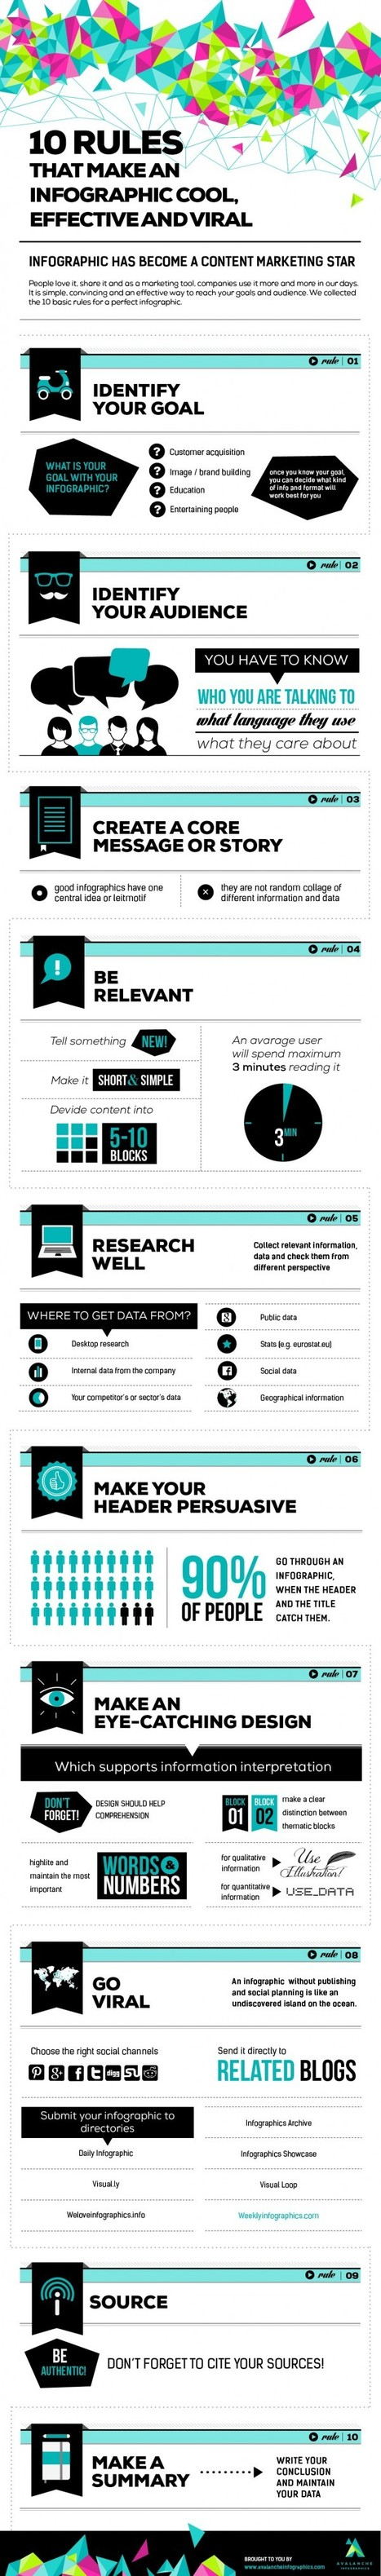 10 Rules To Make An Infographic Viral [INFOGRAPHIC] | Time to Learn | Scoop.it